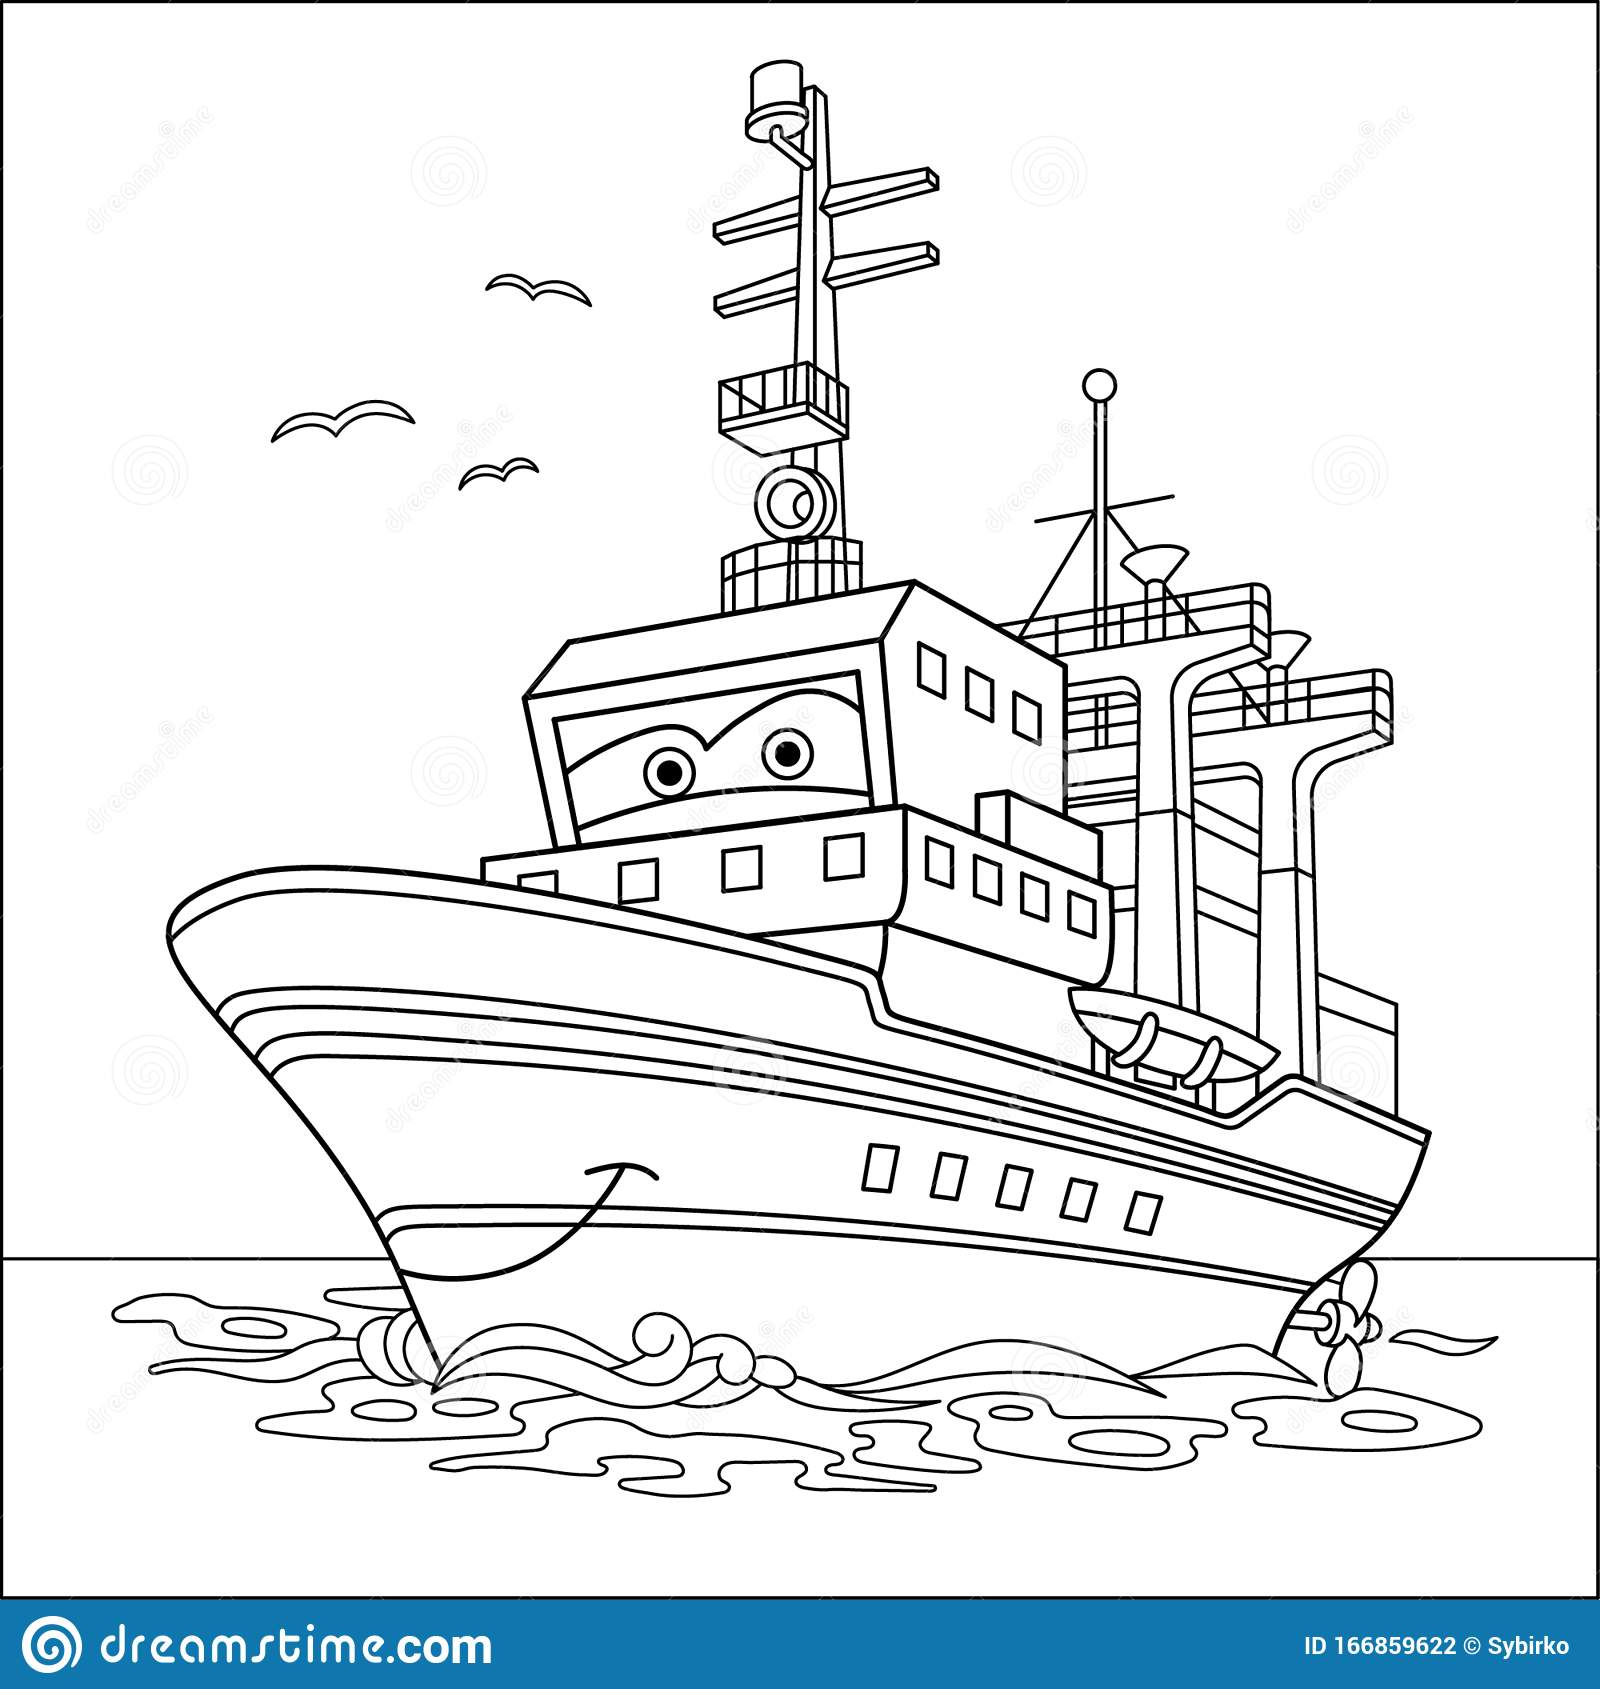 PLANE coloring pages - Coloring pages - Printable Coloring Pages ... | 1689x1600